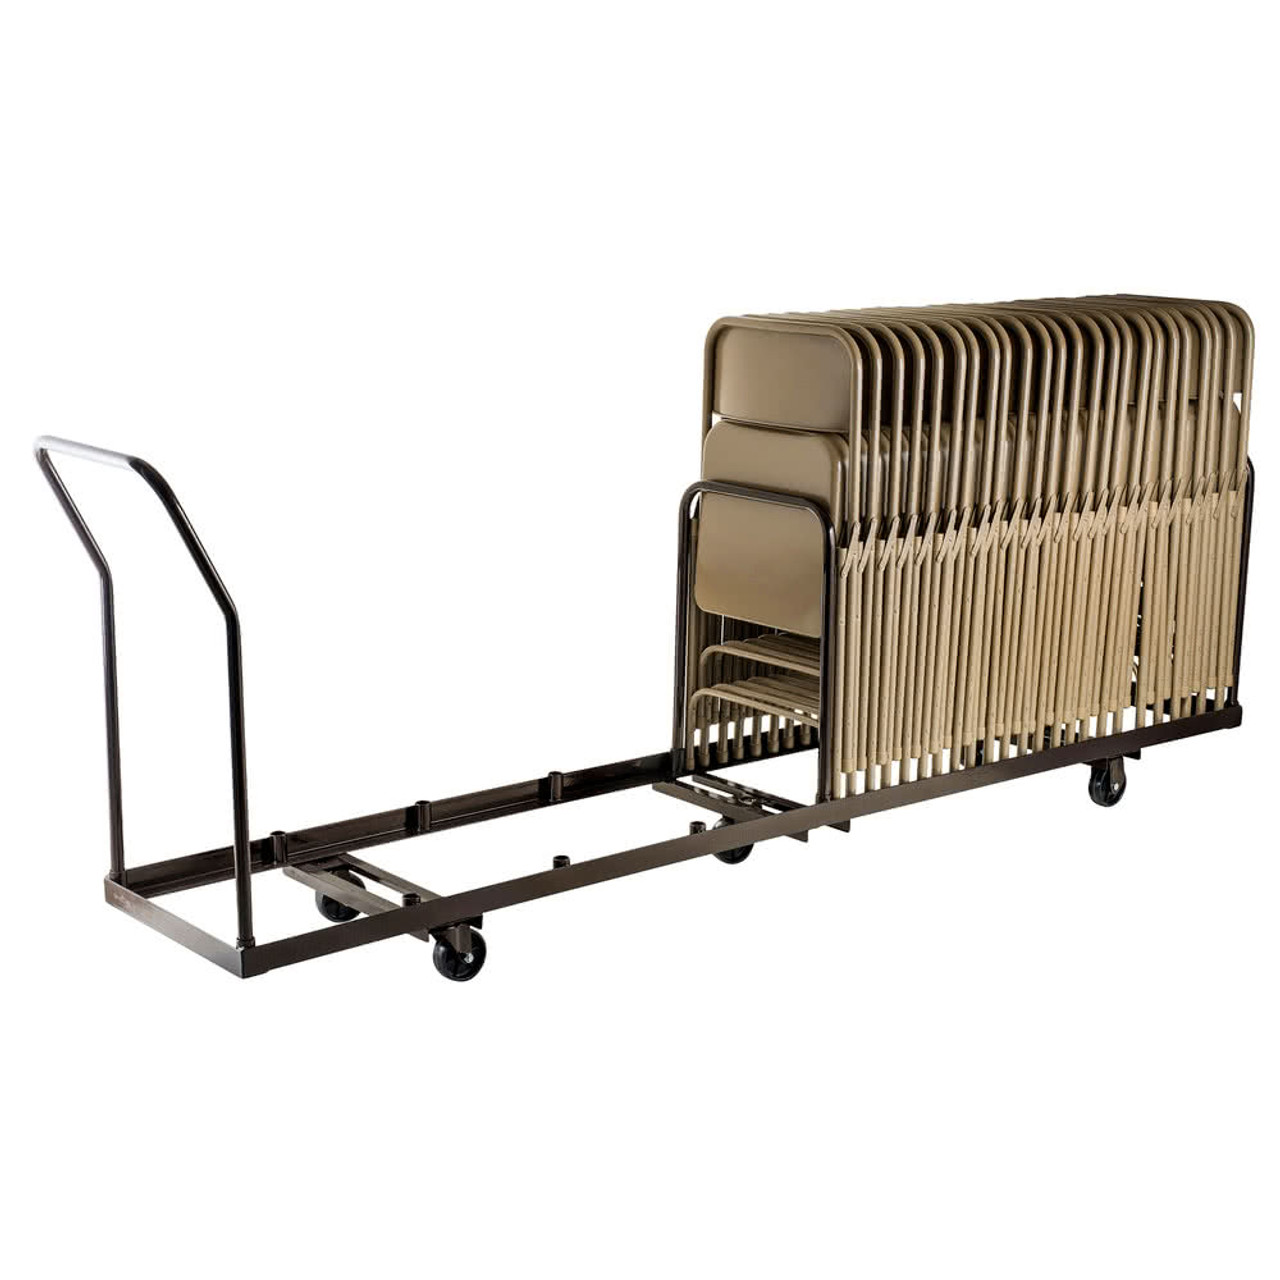 folding chair dolly 50 capacity serta perfect lift reviews linear storage and transport by national public seating model